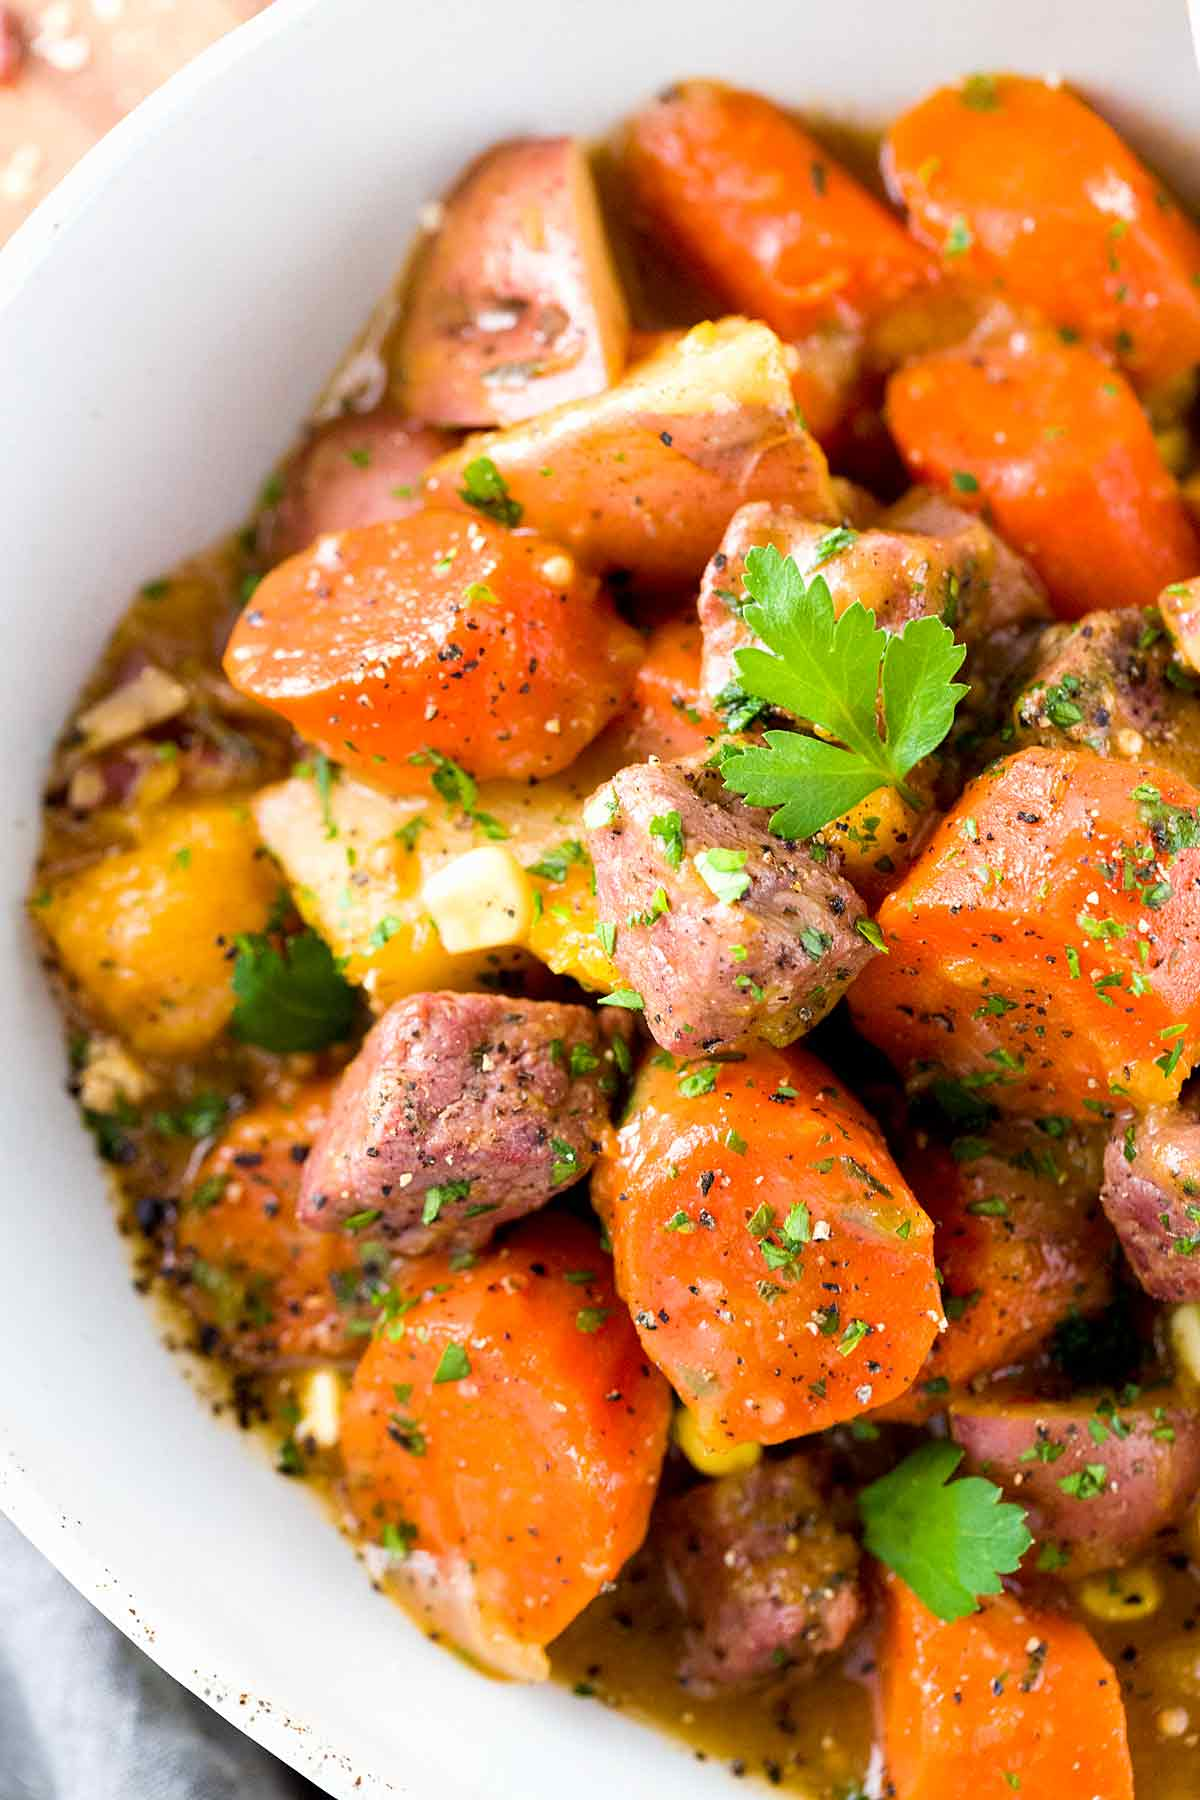 Irish beef stew recipe with tender pieces of meat and root vegetables